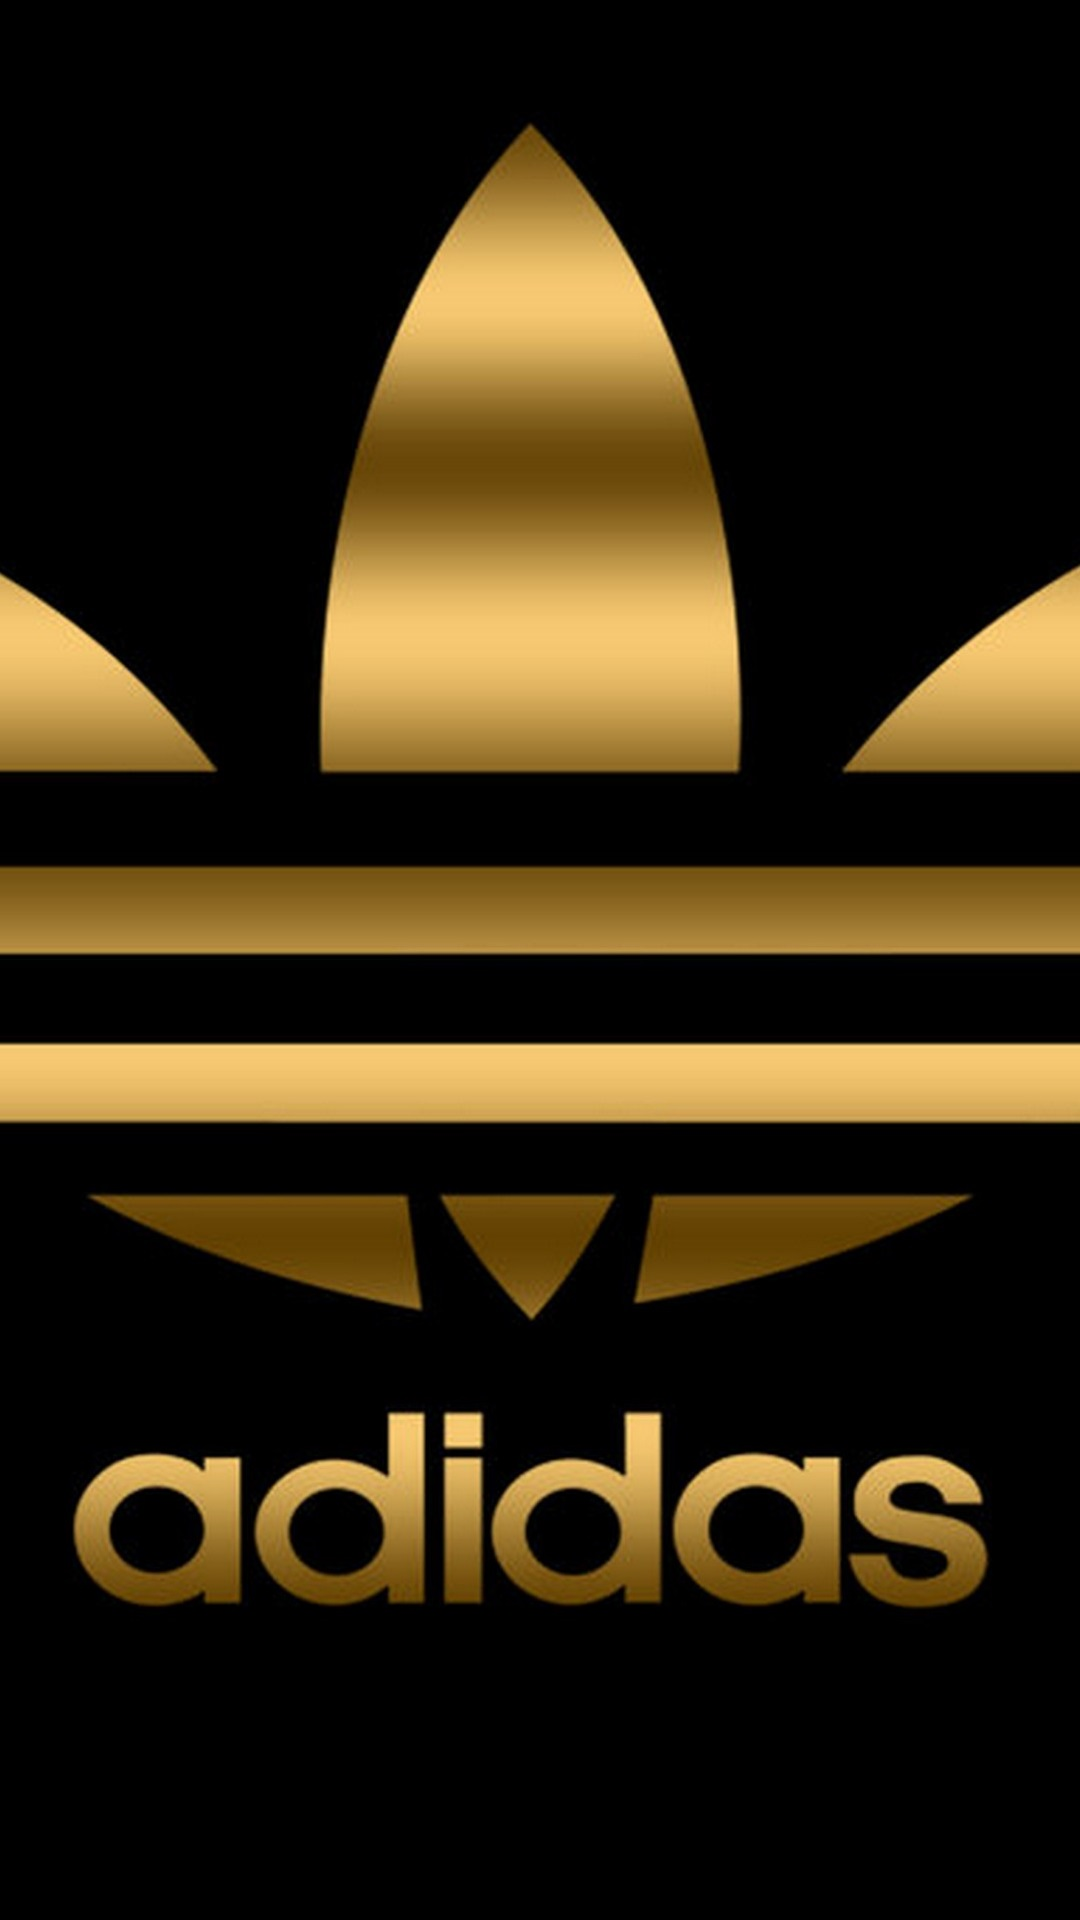 Adidas Logo Backgrounds For Android